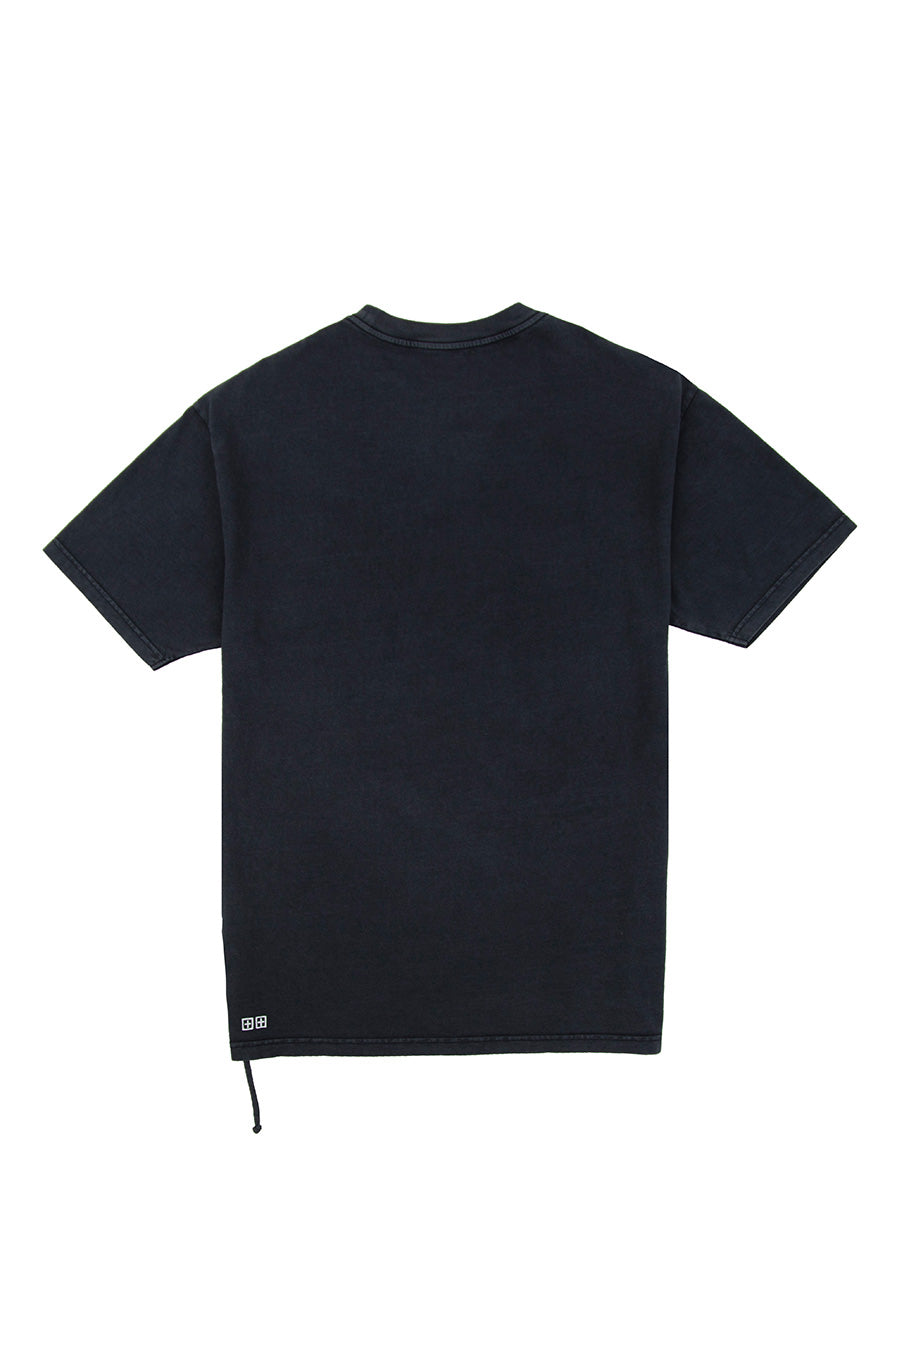 Ksubi - Black Amplified T-Shirt | 1032 SPACE